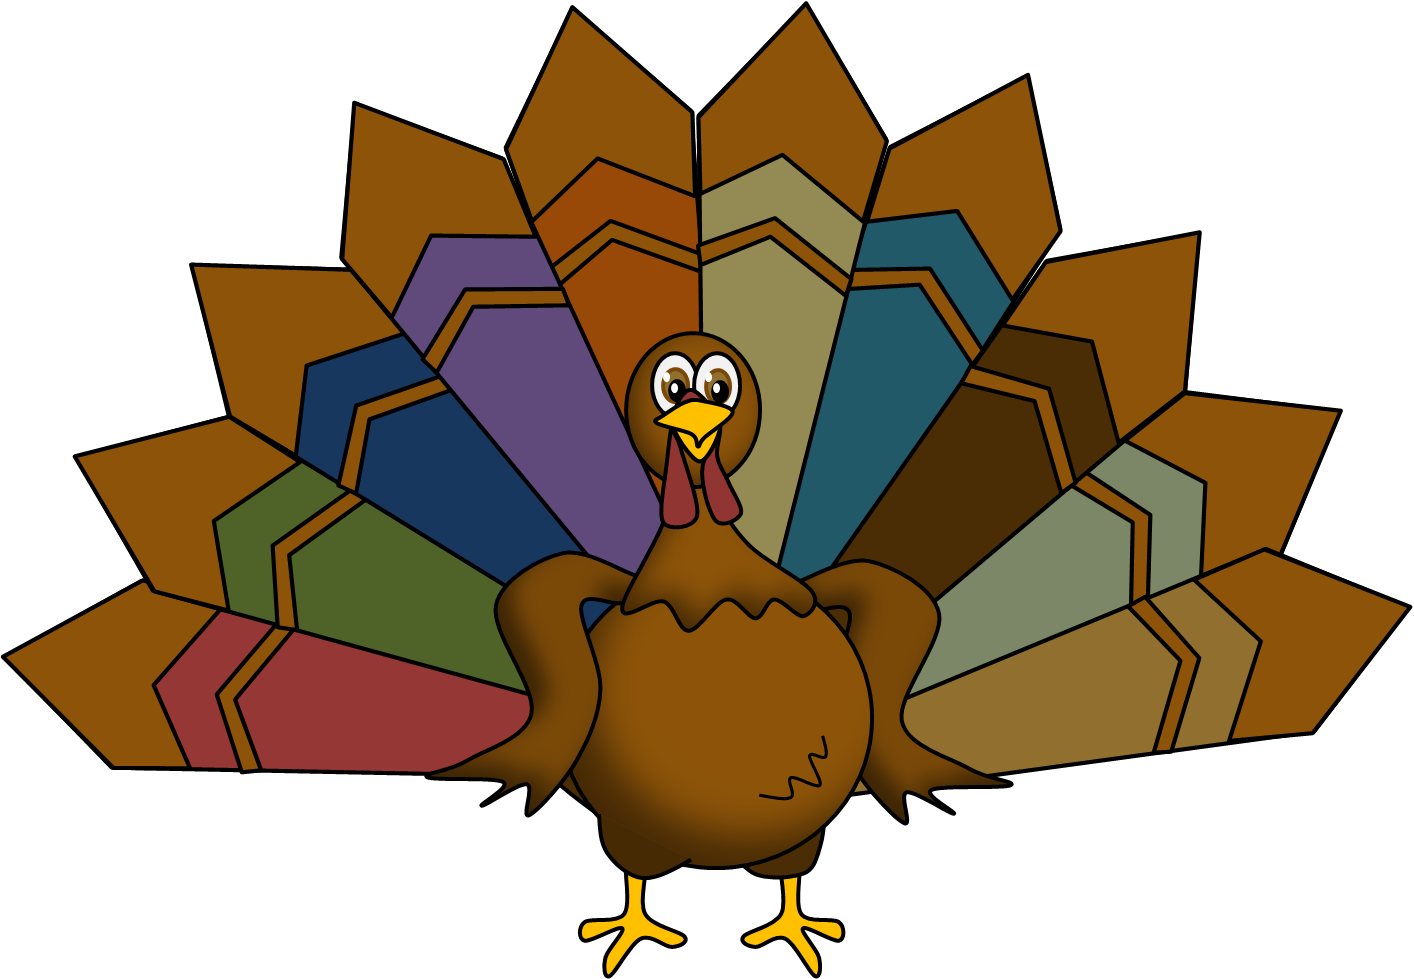 Turkey body clip art - photo#20